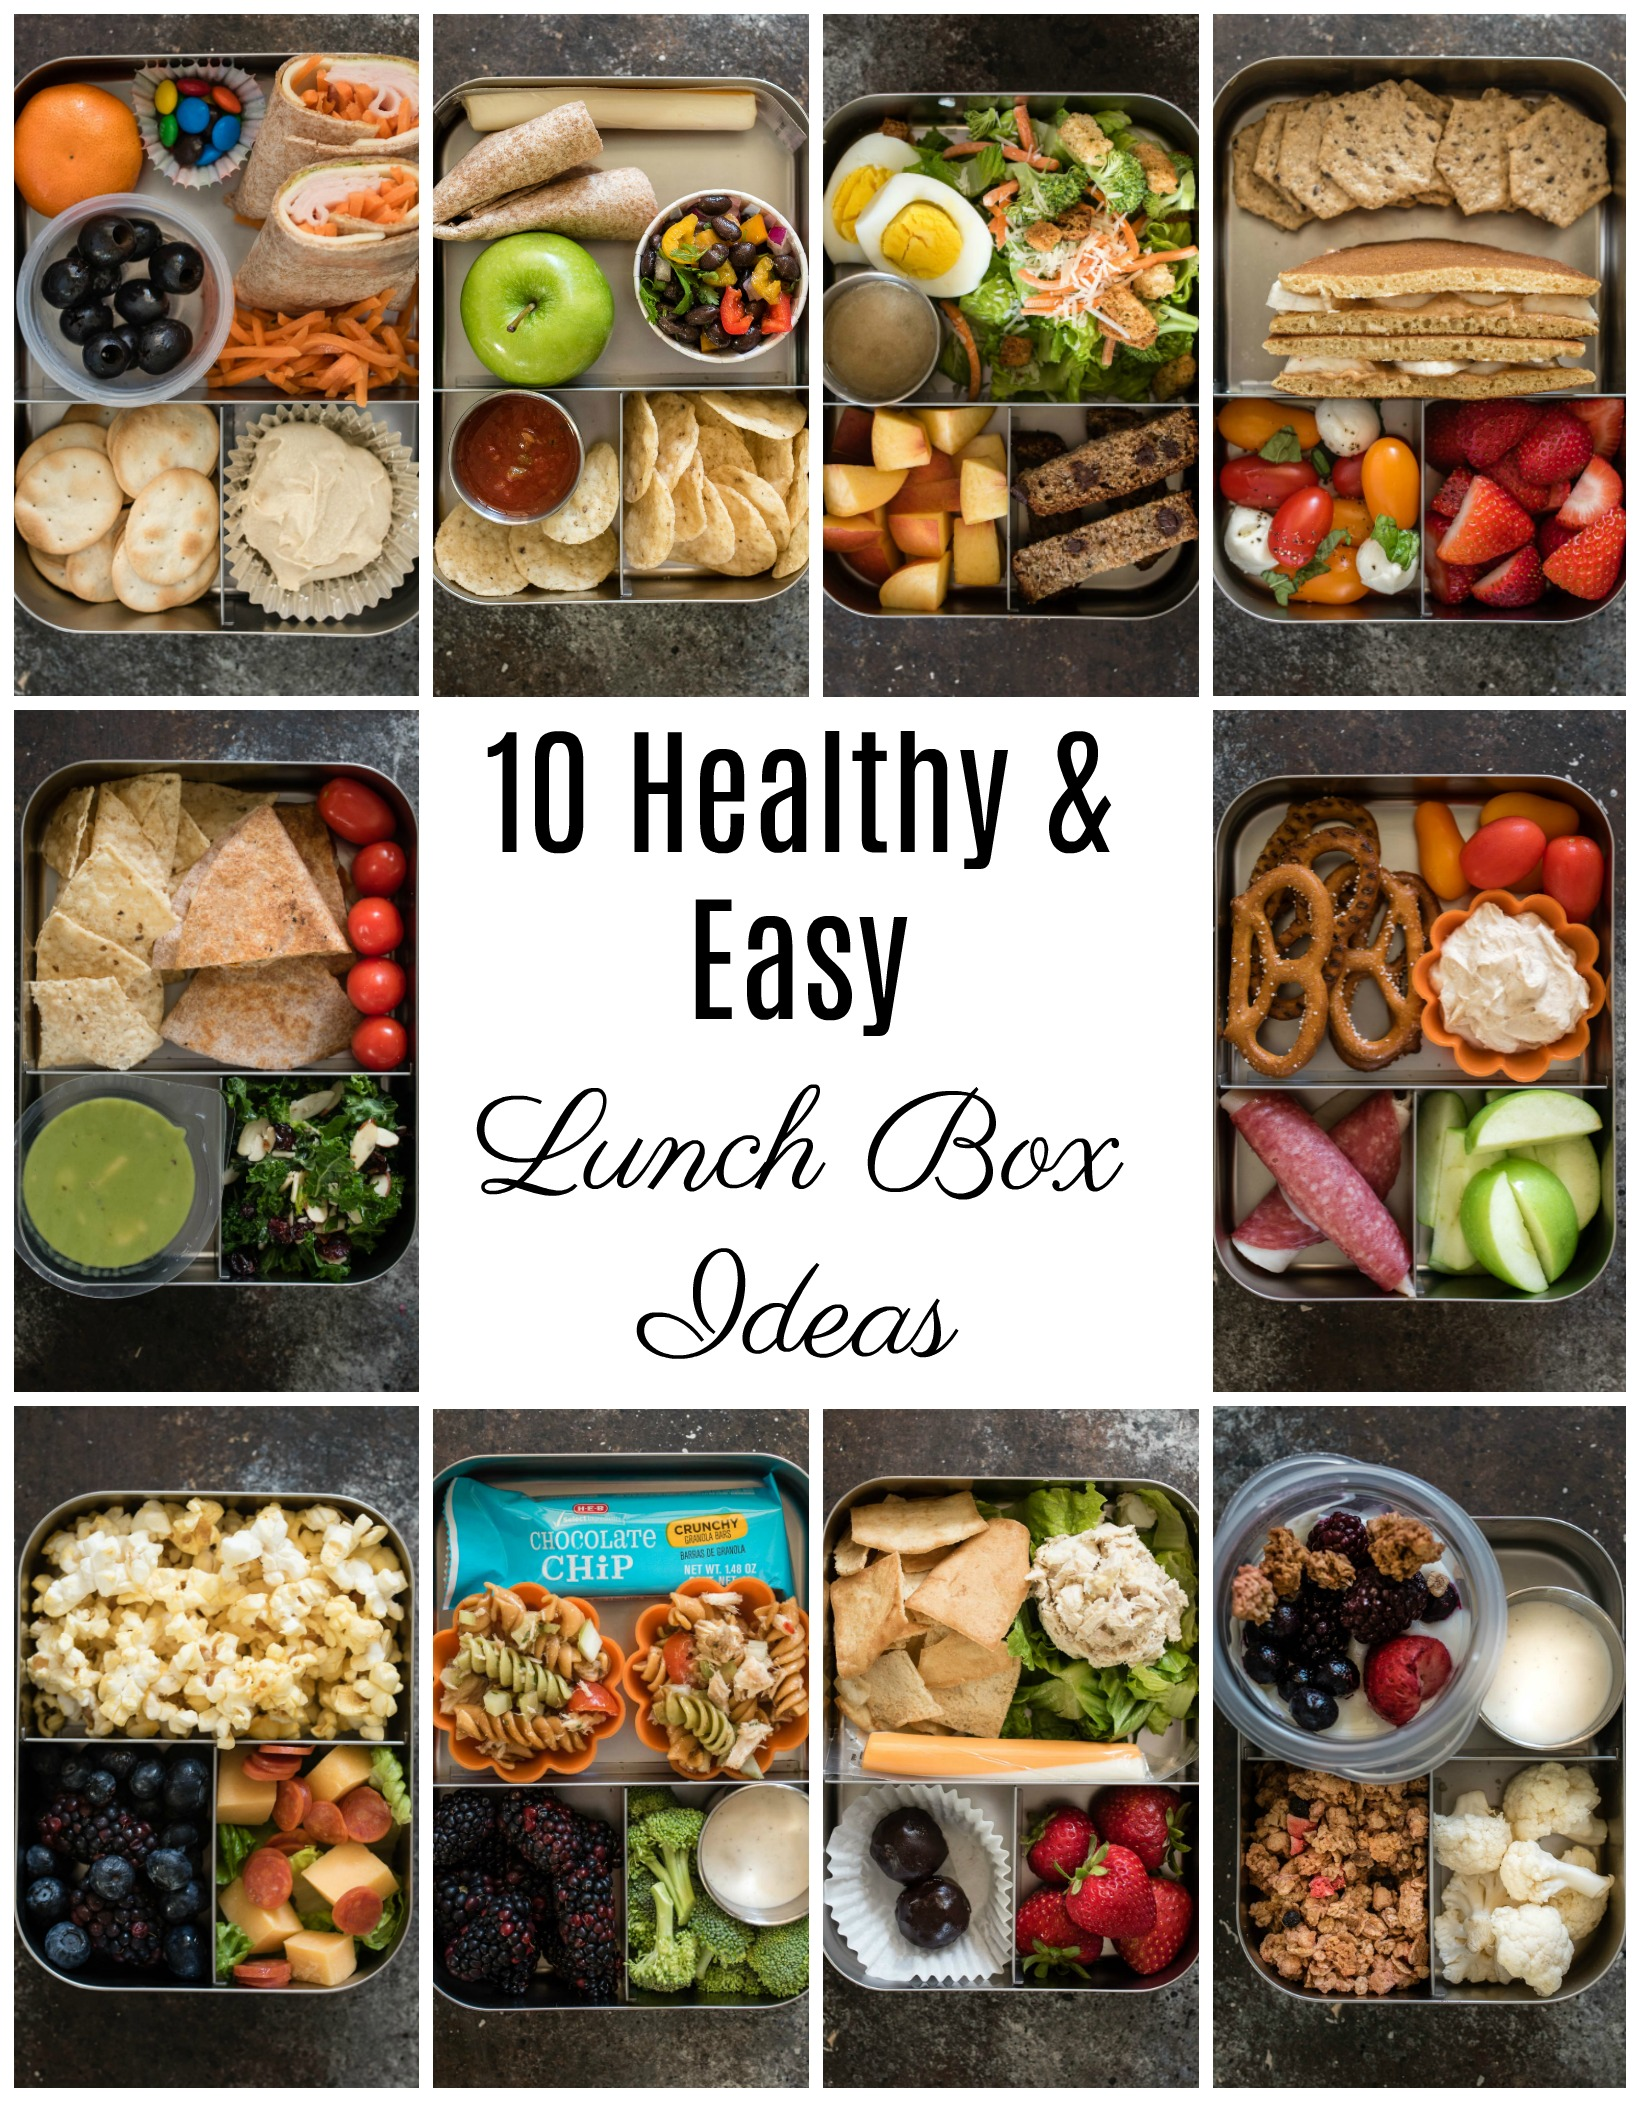 Best Meal Ideas For Lunch